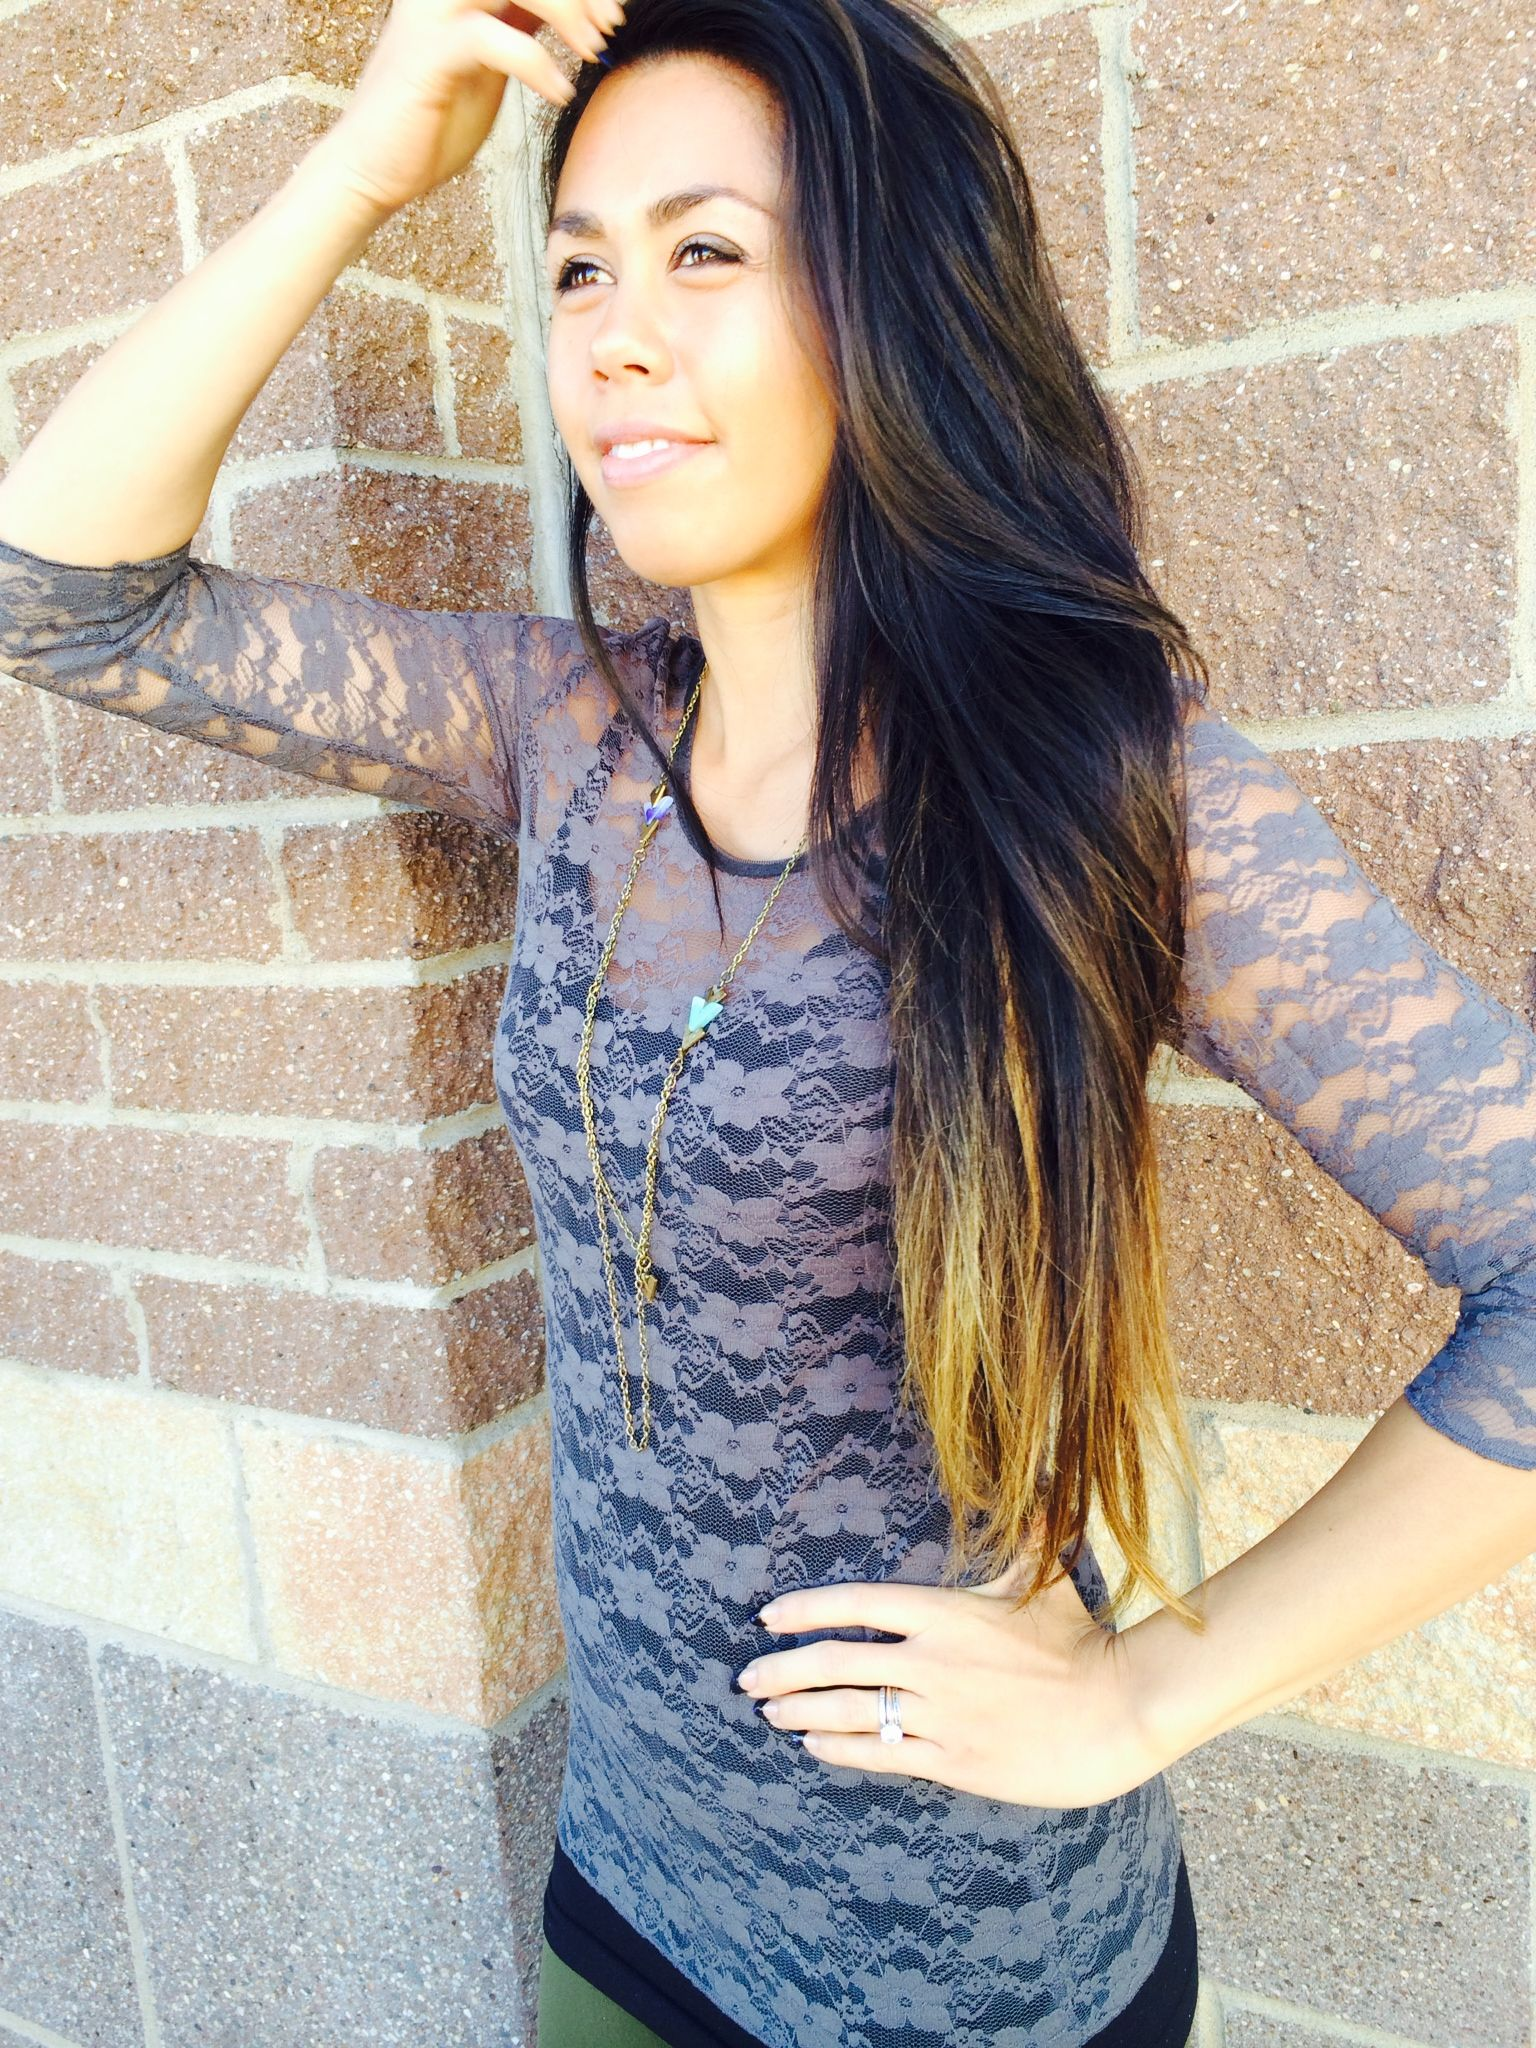 New Lace Tops At Taj Boutique Hawaiian Mn Lace Fall Style Fashion Trends Lace Tops Fashion Boutique